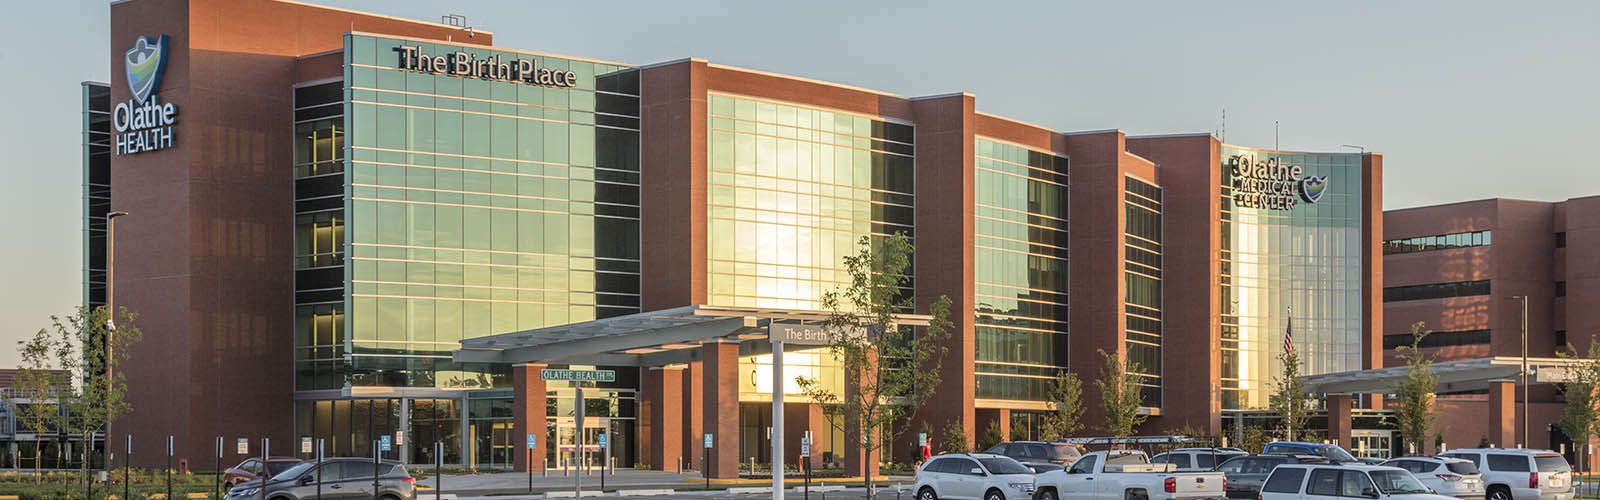 Olathe Medical Center - the Birth Place